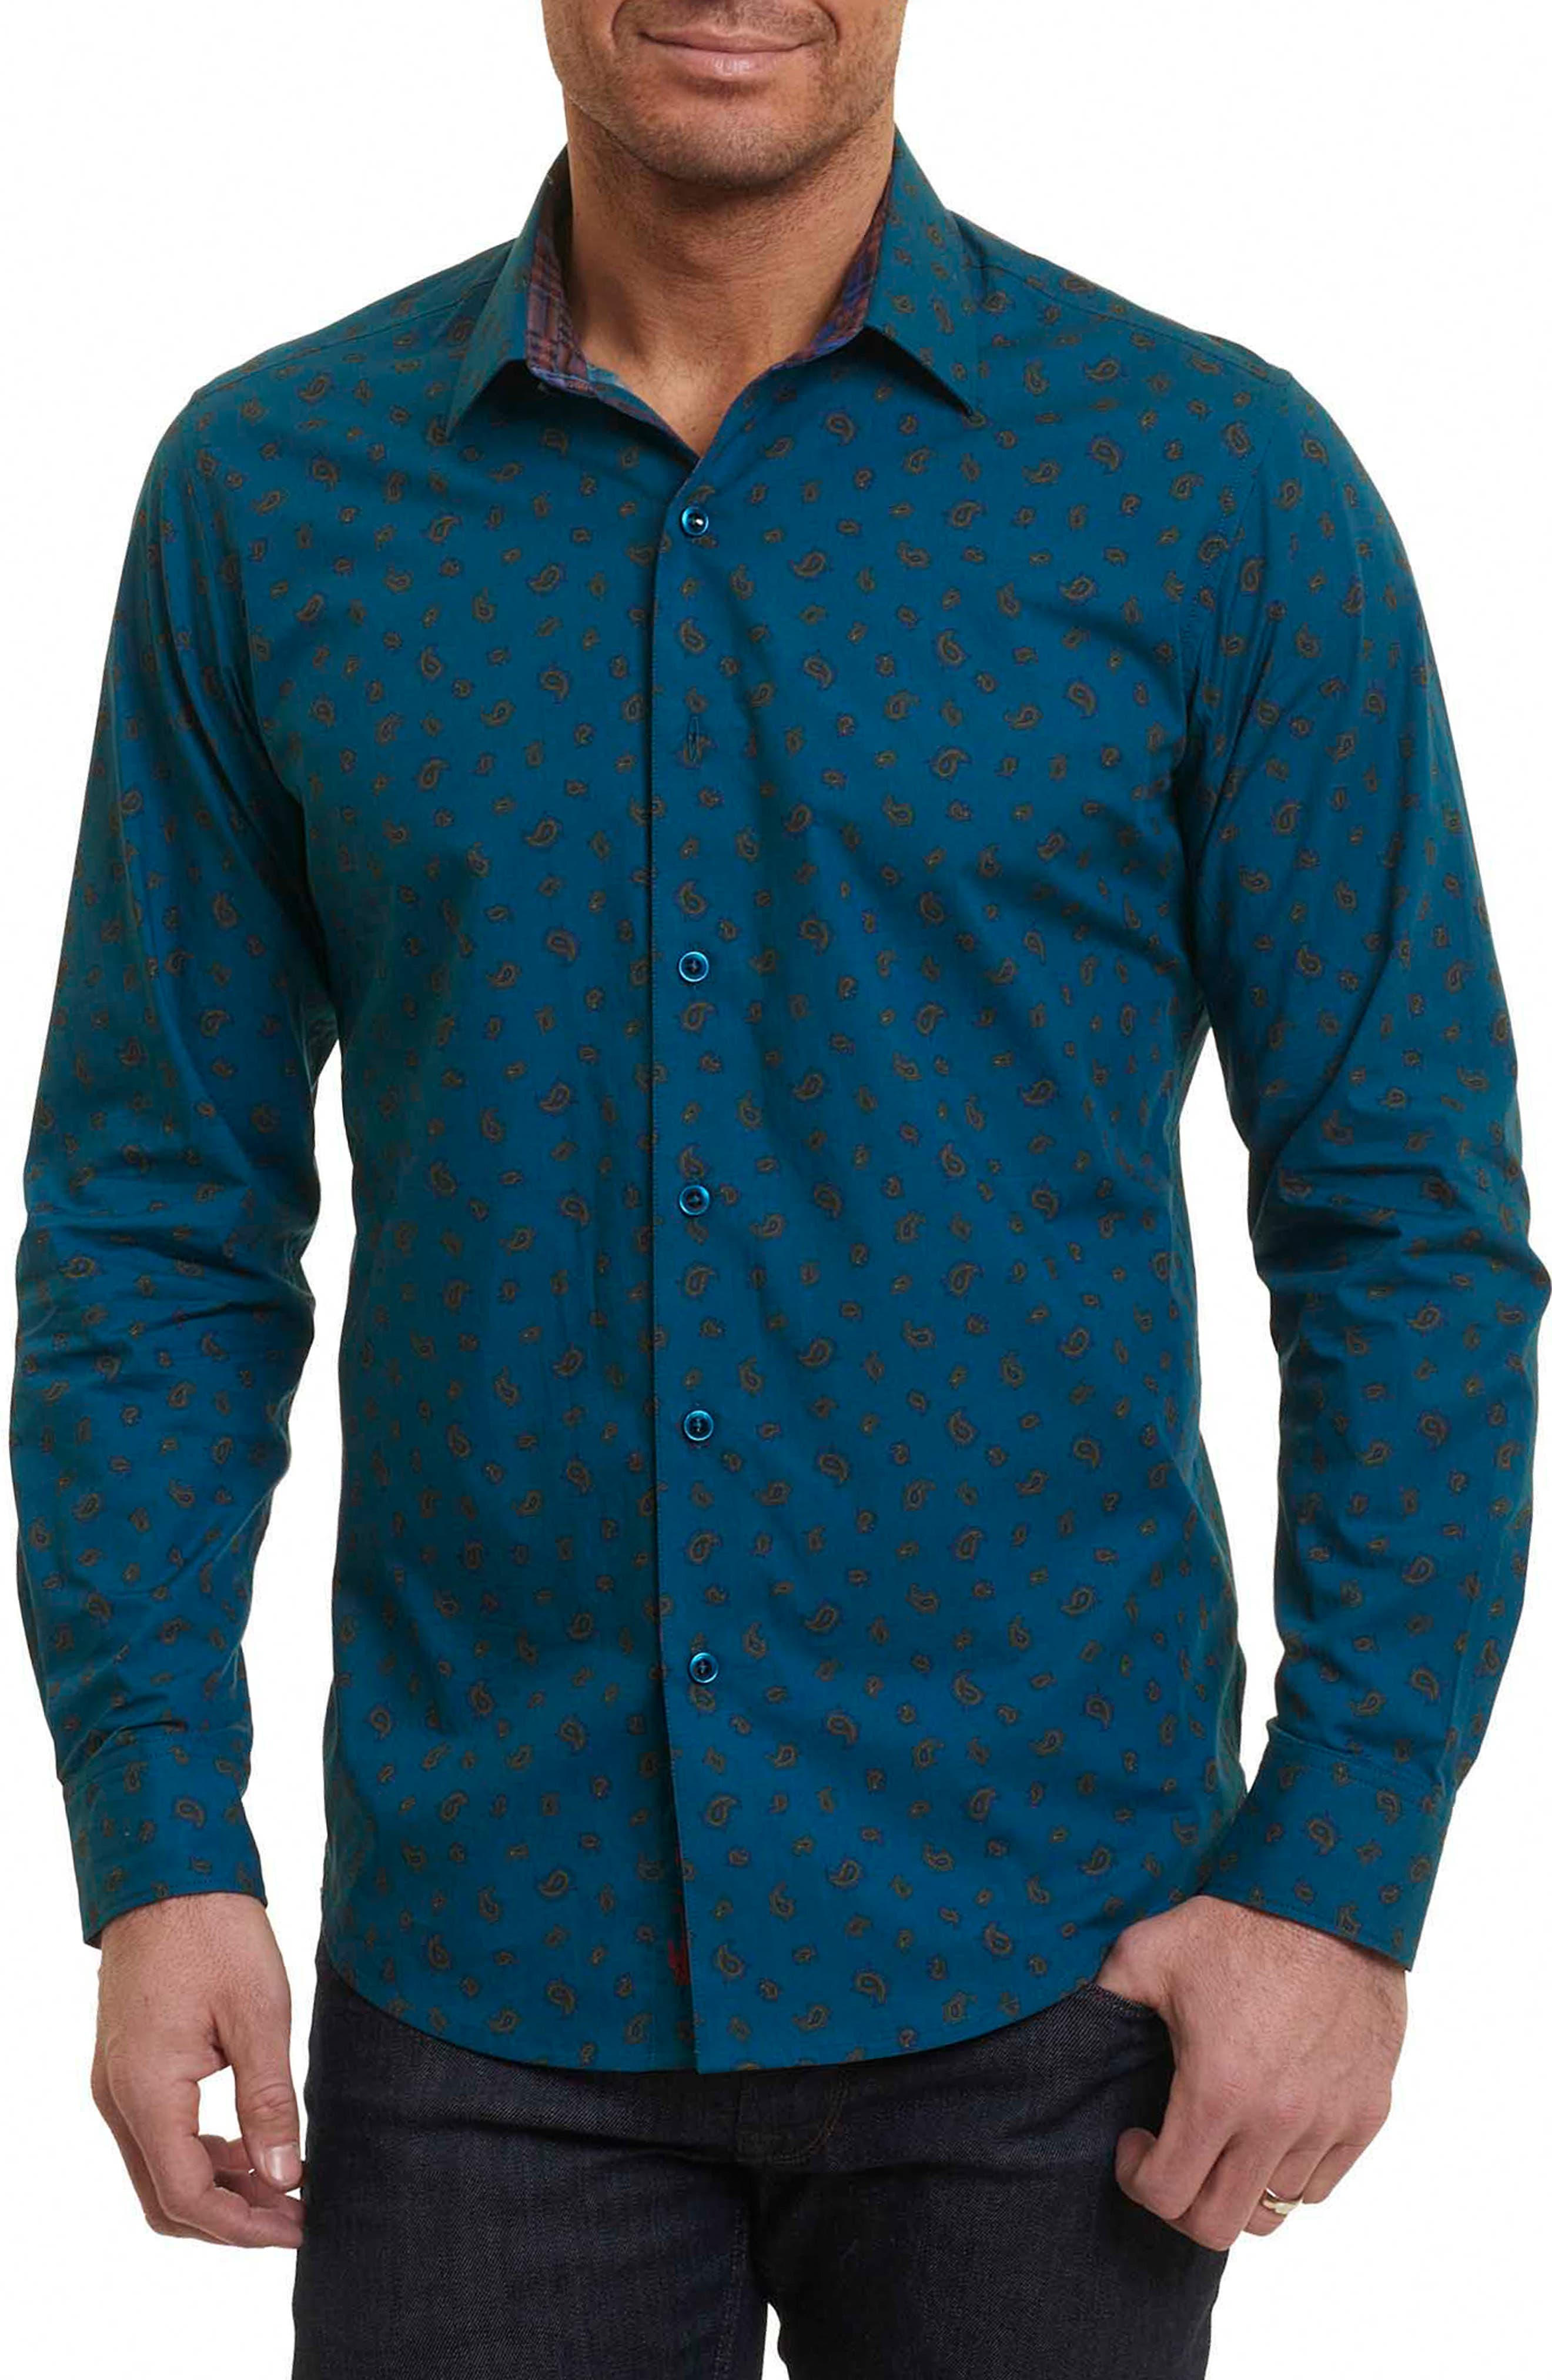 Cold Spring Classic Fit Paisley Sport Shirt,                             Main thumbnail 1, color,                             463